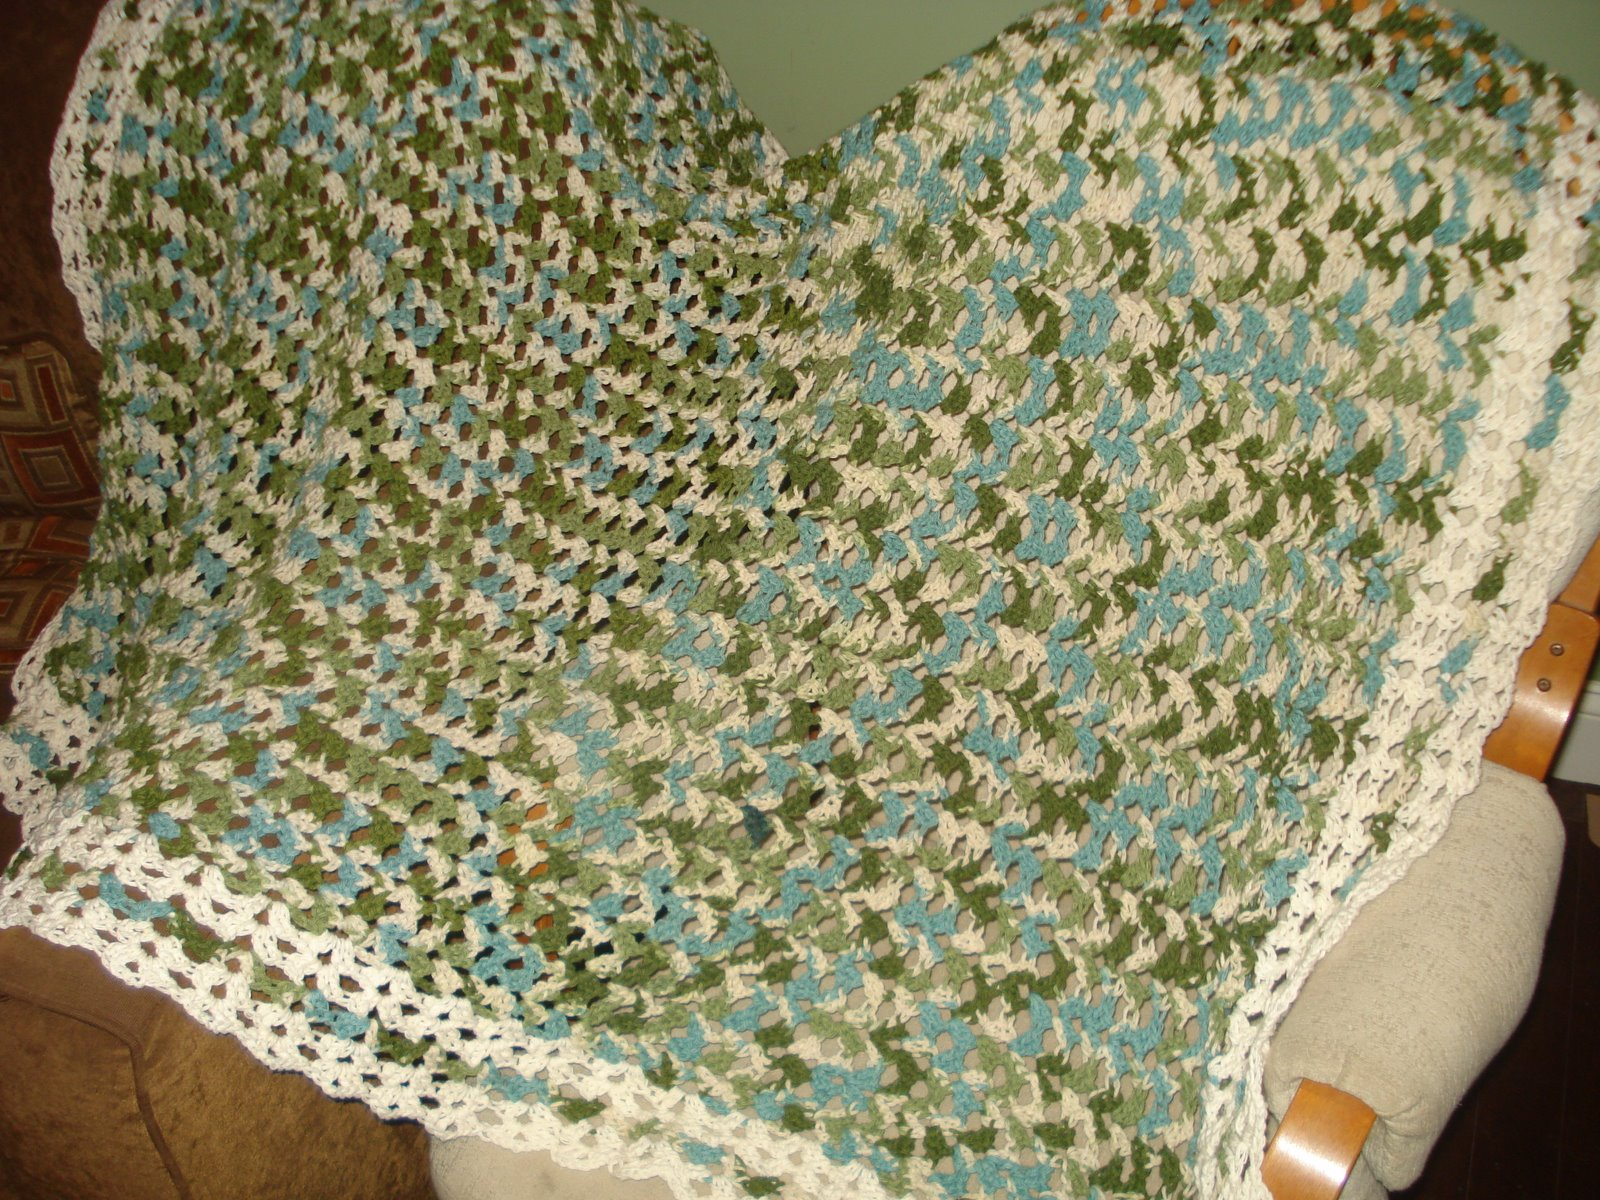 Ginger Mess: Crocheted Blanket with Variegated Yarn